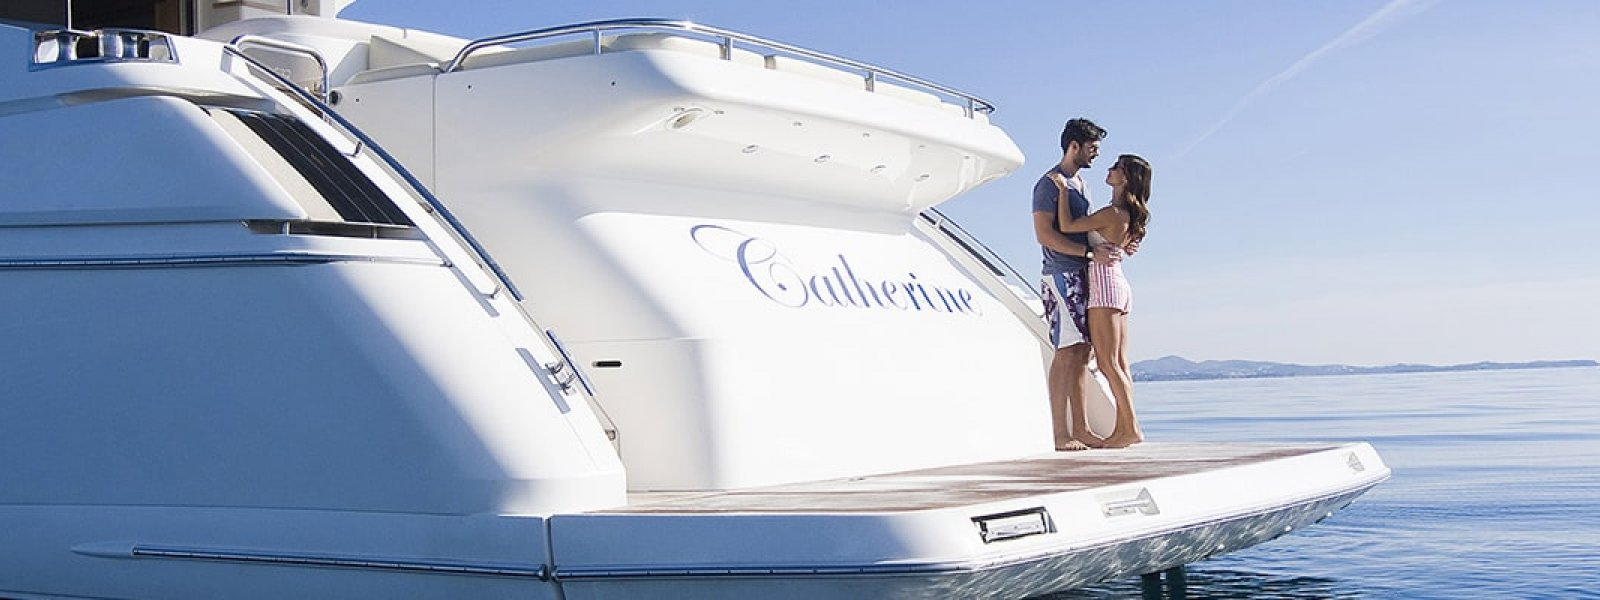 Feeling Romantic on Luxury Yacht by Cozmo Yachts Charter Dubai